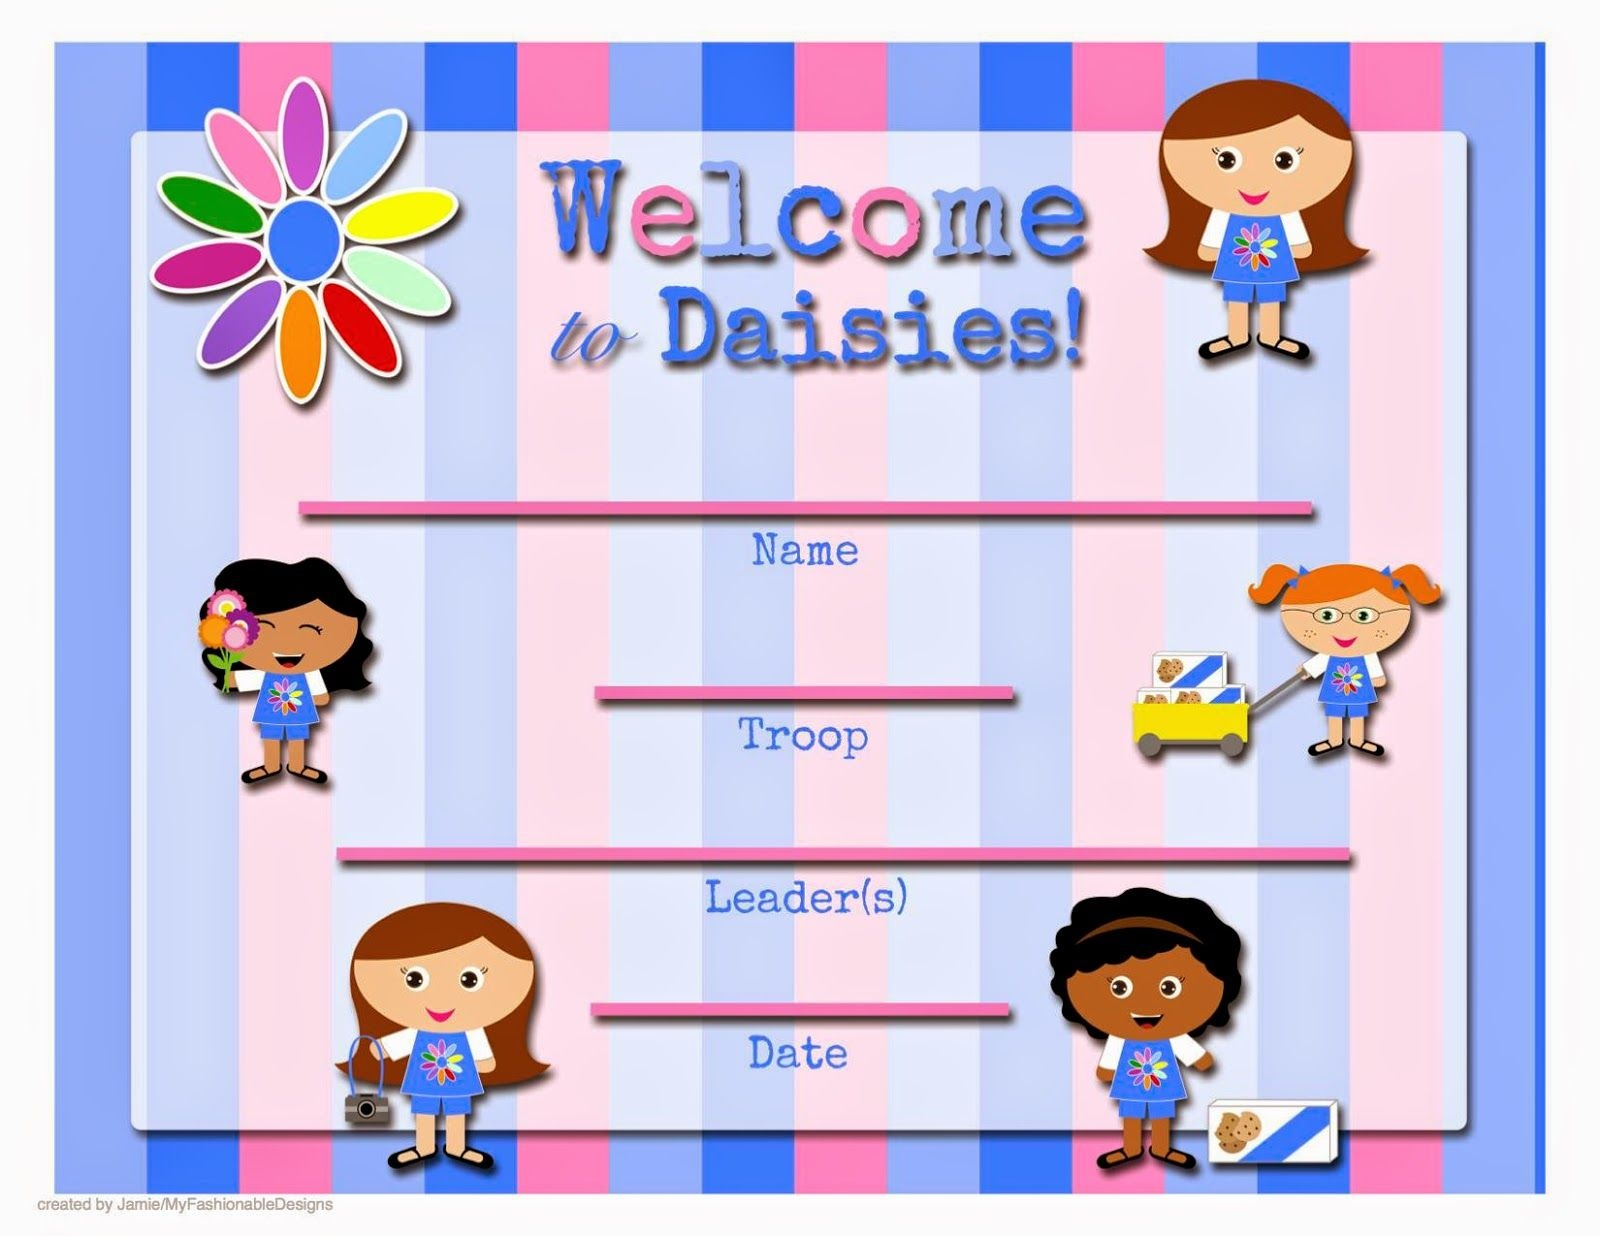 Free Printable: Welcome To The Troop Certificate | Girl Scouts - Daisy Girl Scout Certificates Printable Free